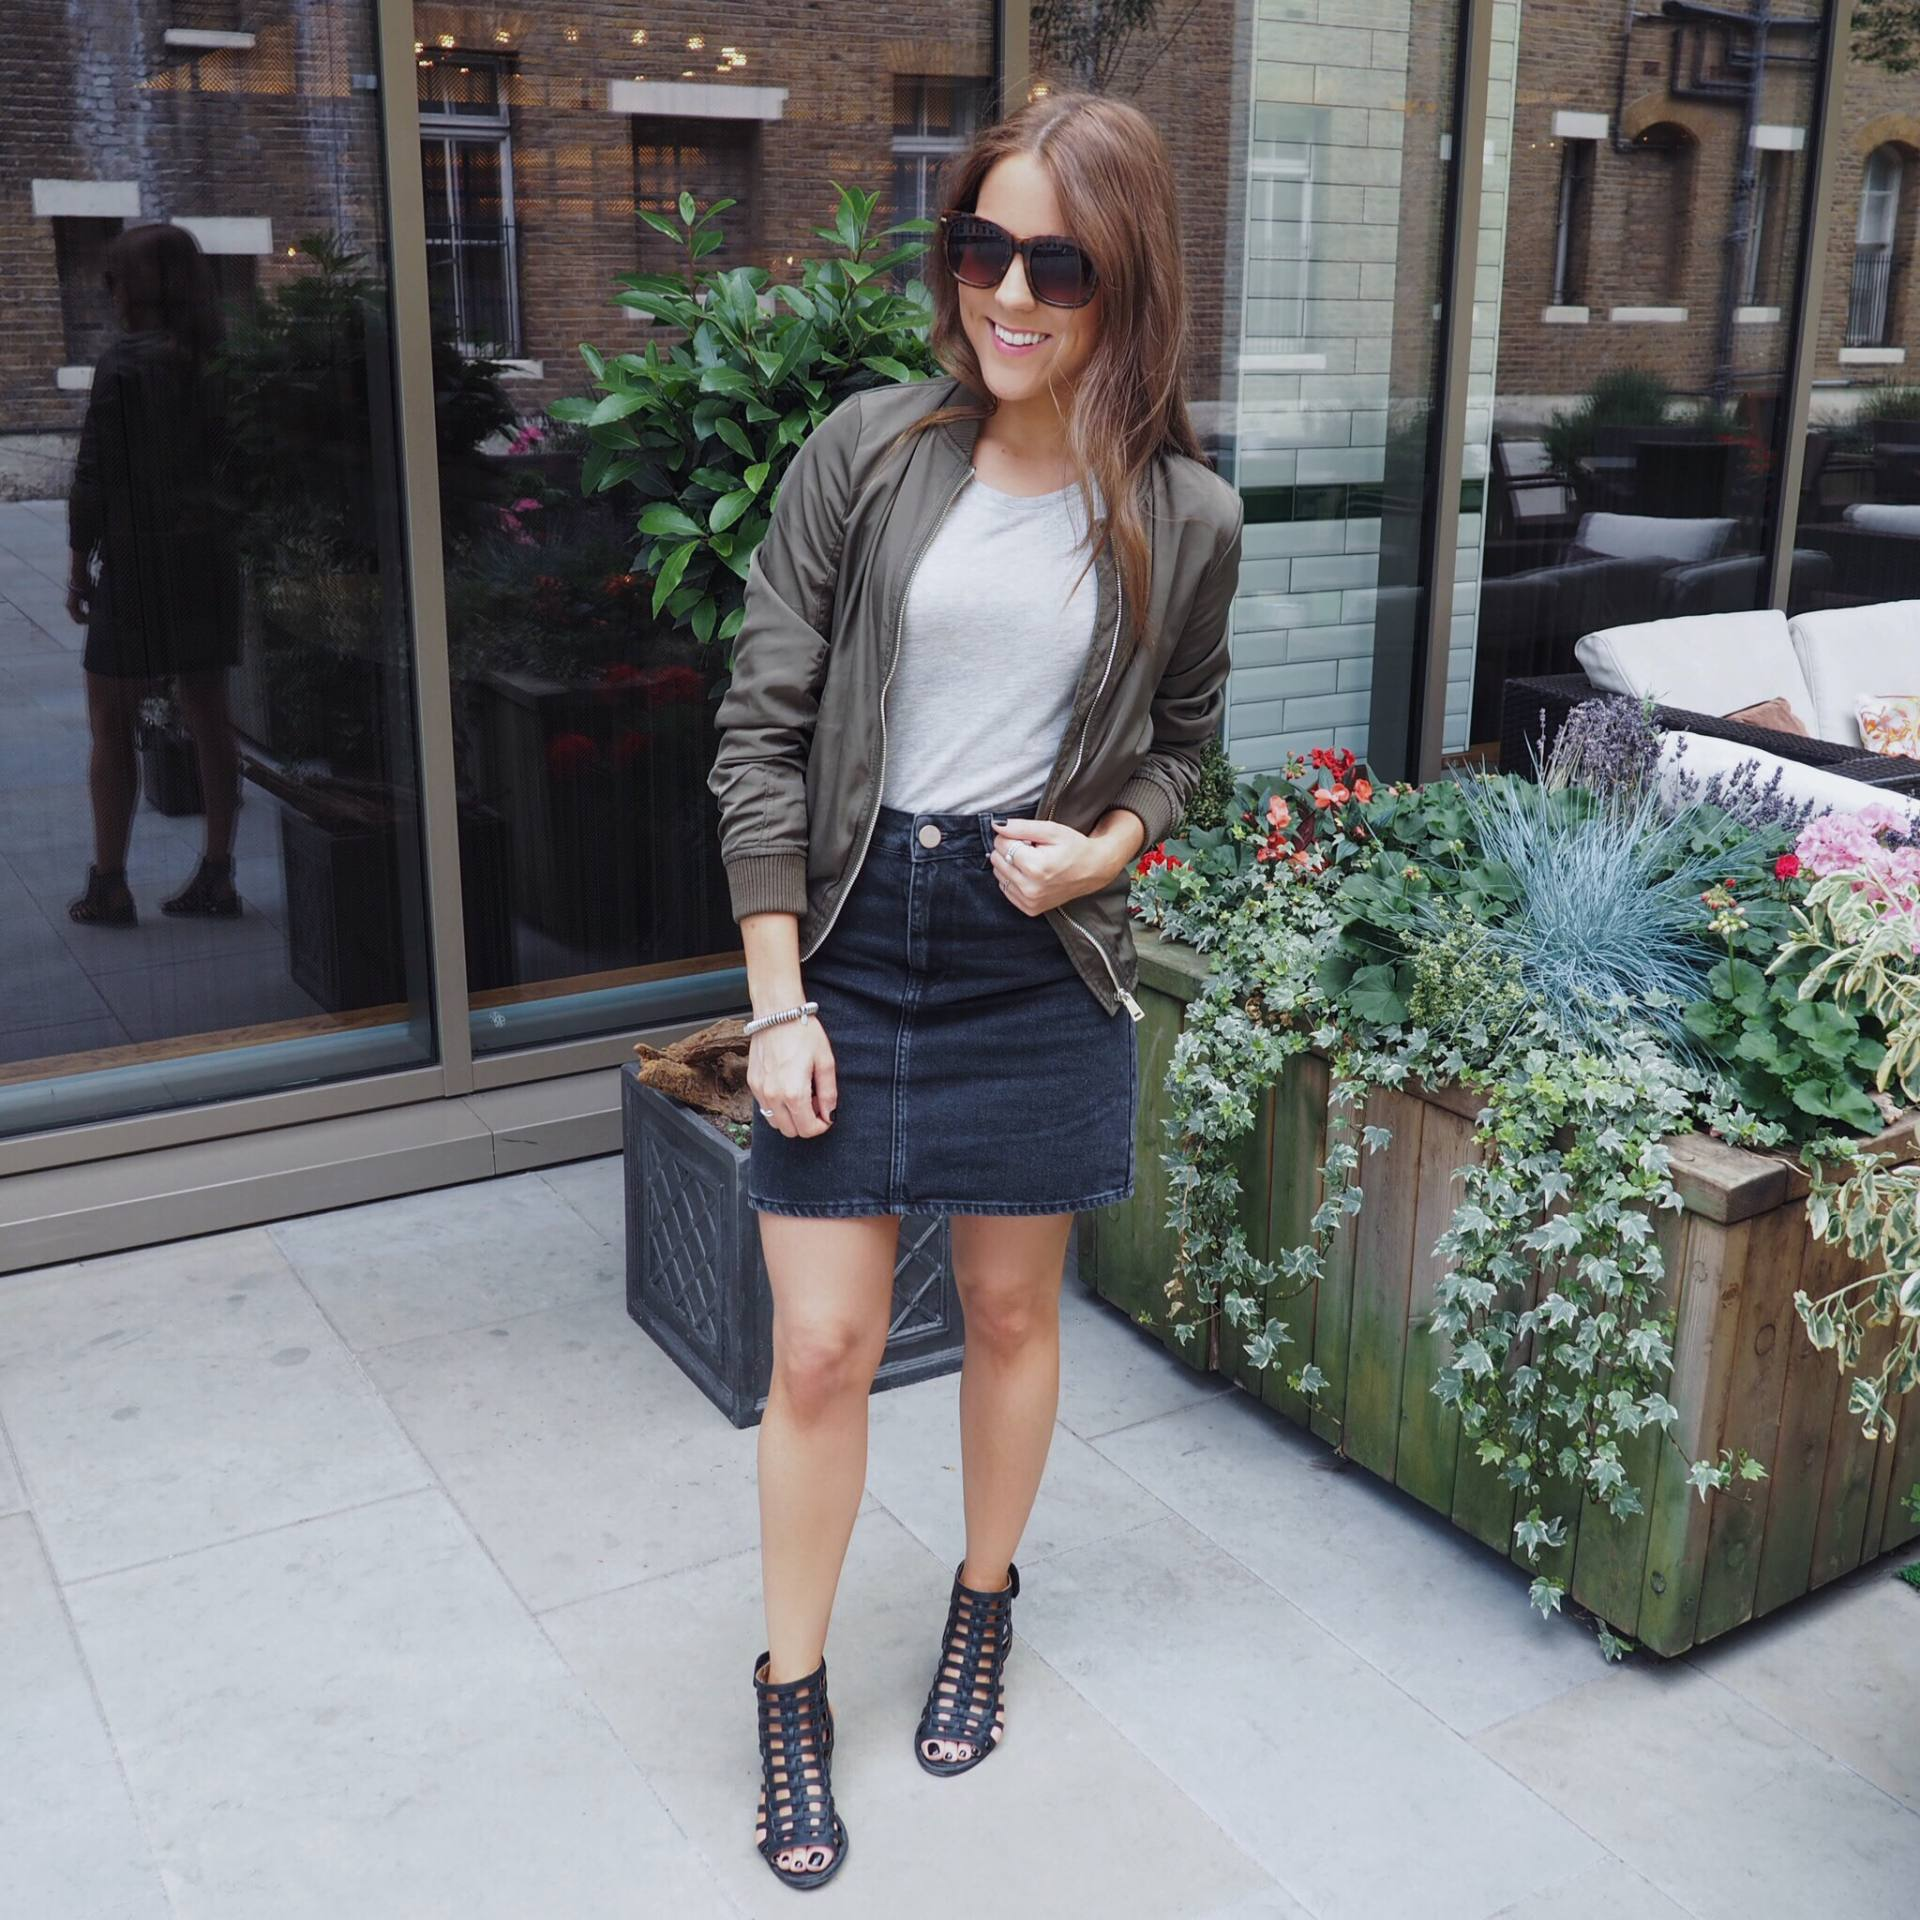 ASOS khaki  bomber jacket, ASOS white t-shirt, ASOS high-waisted black denim skirt